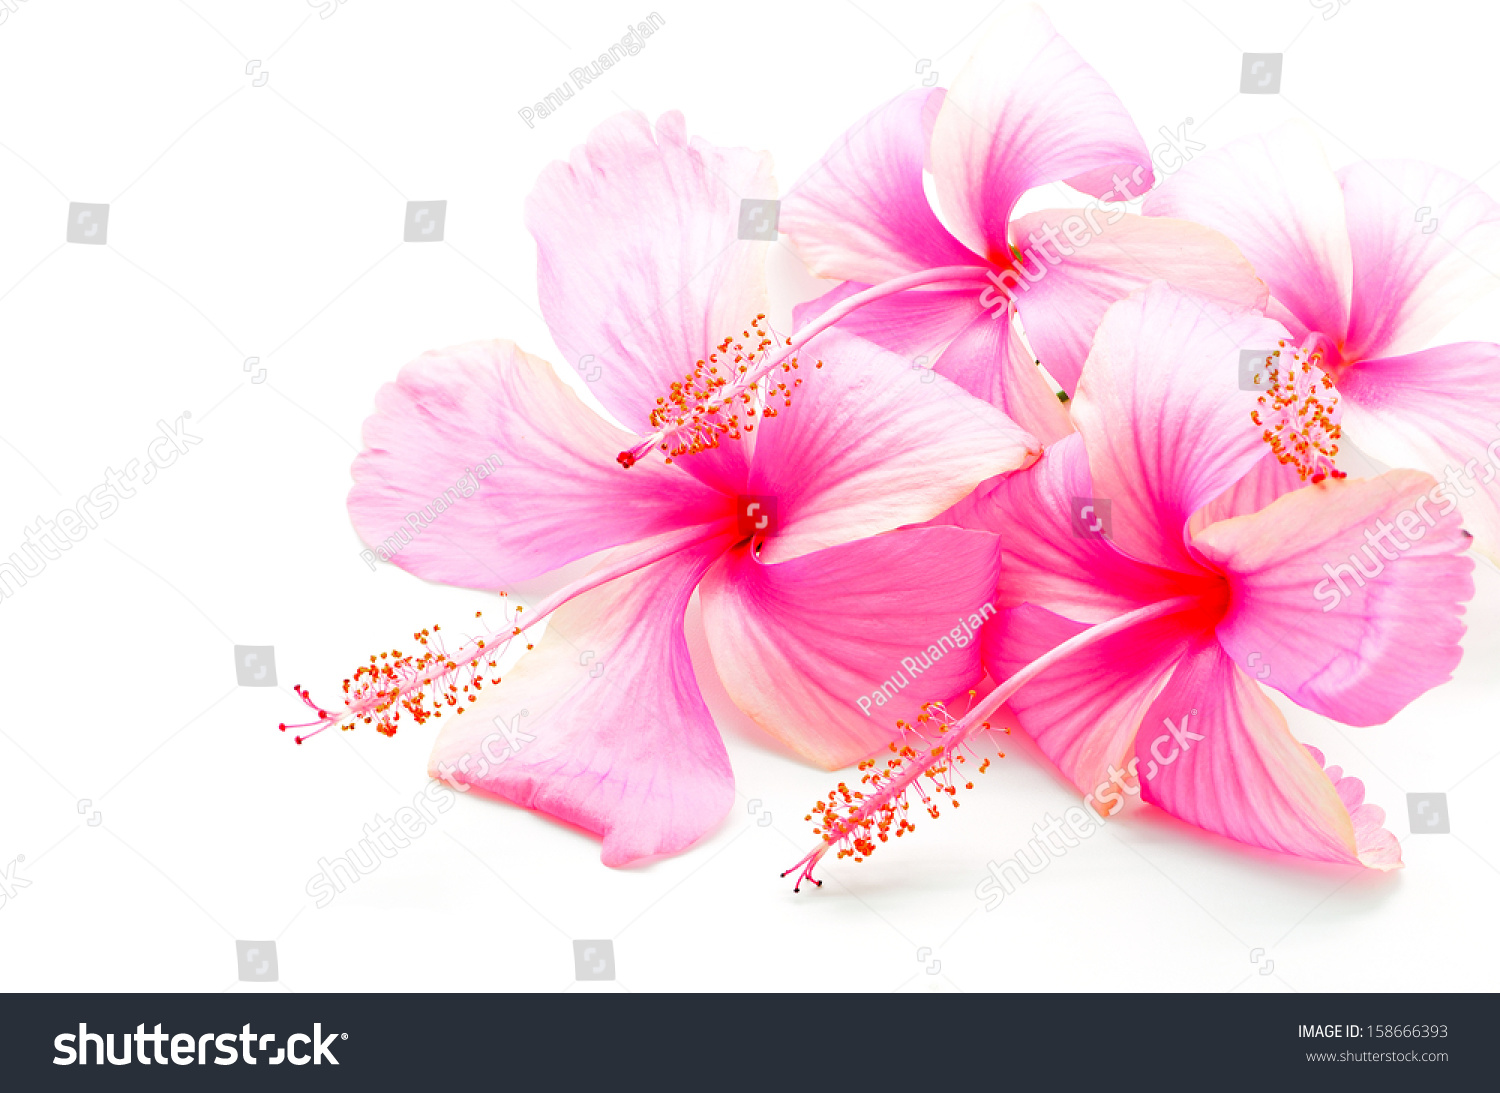 Colorful Pink Hibiscus Flower Isolated On Stock Photo 158666393